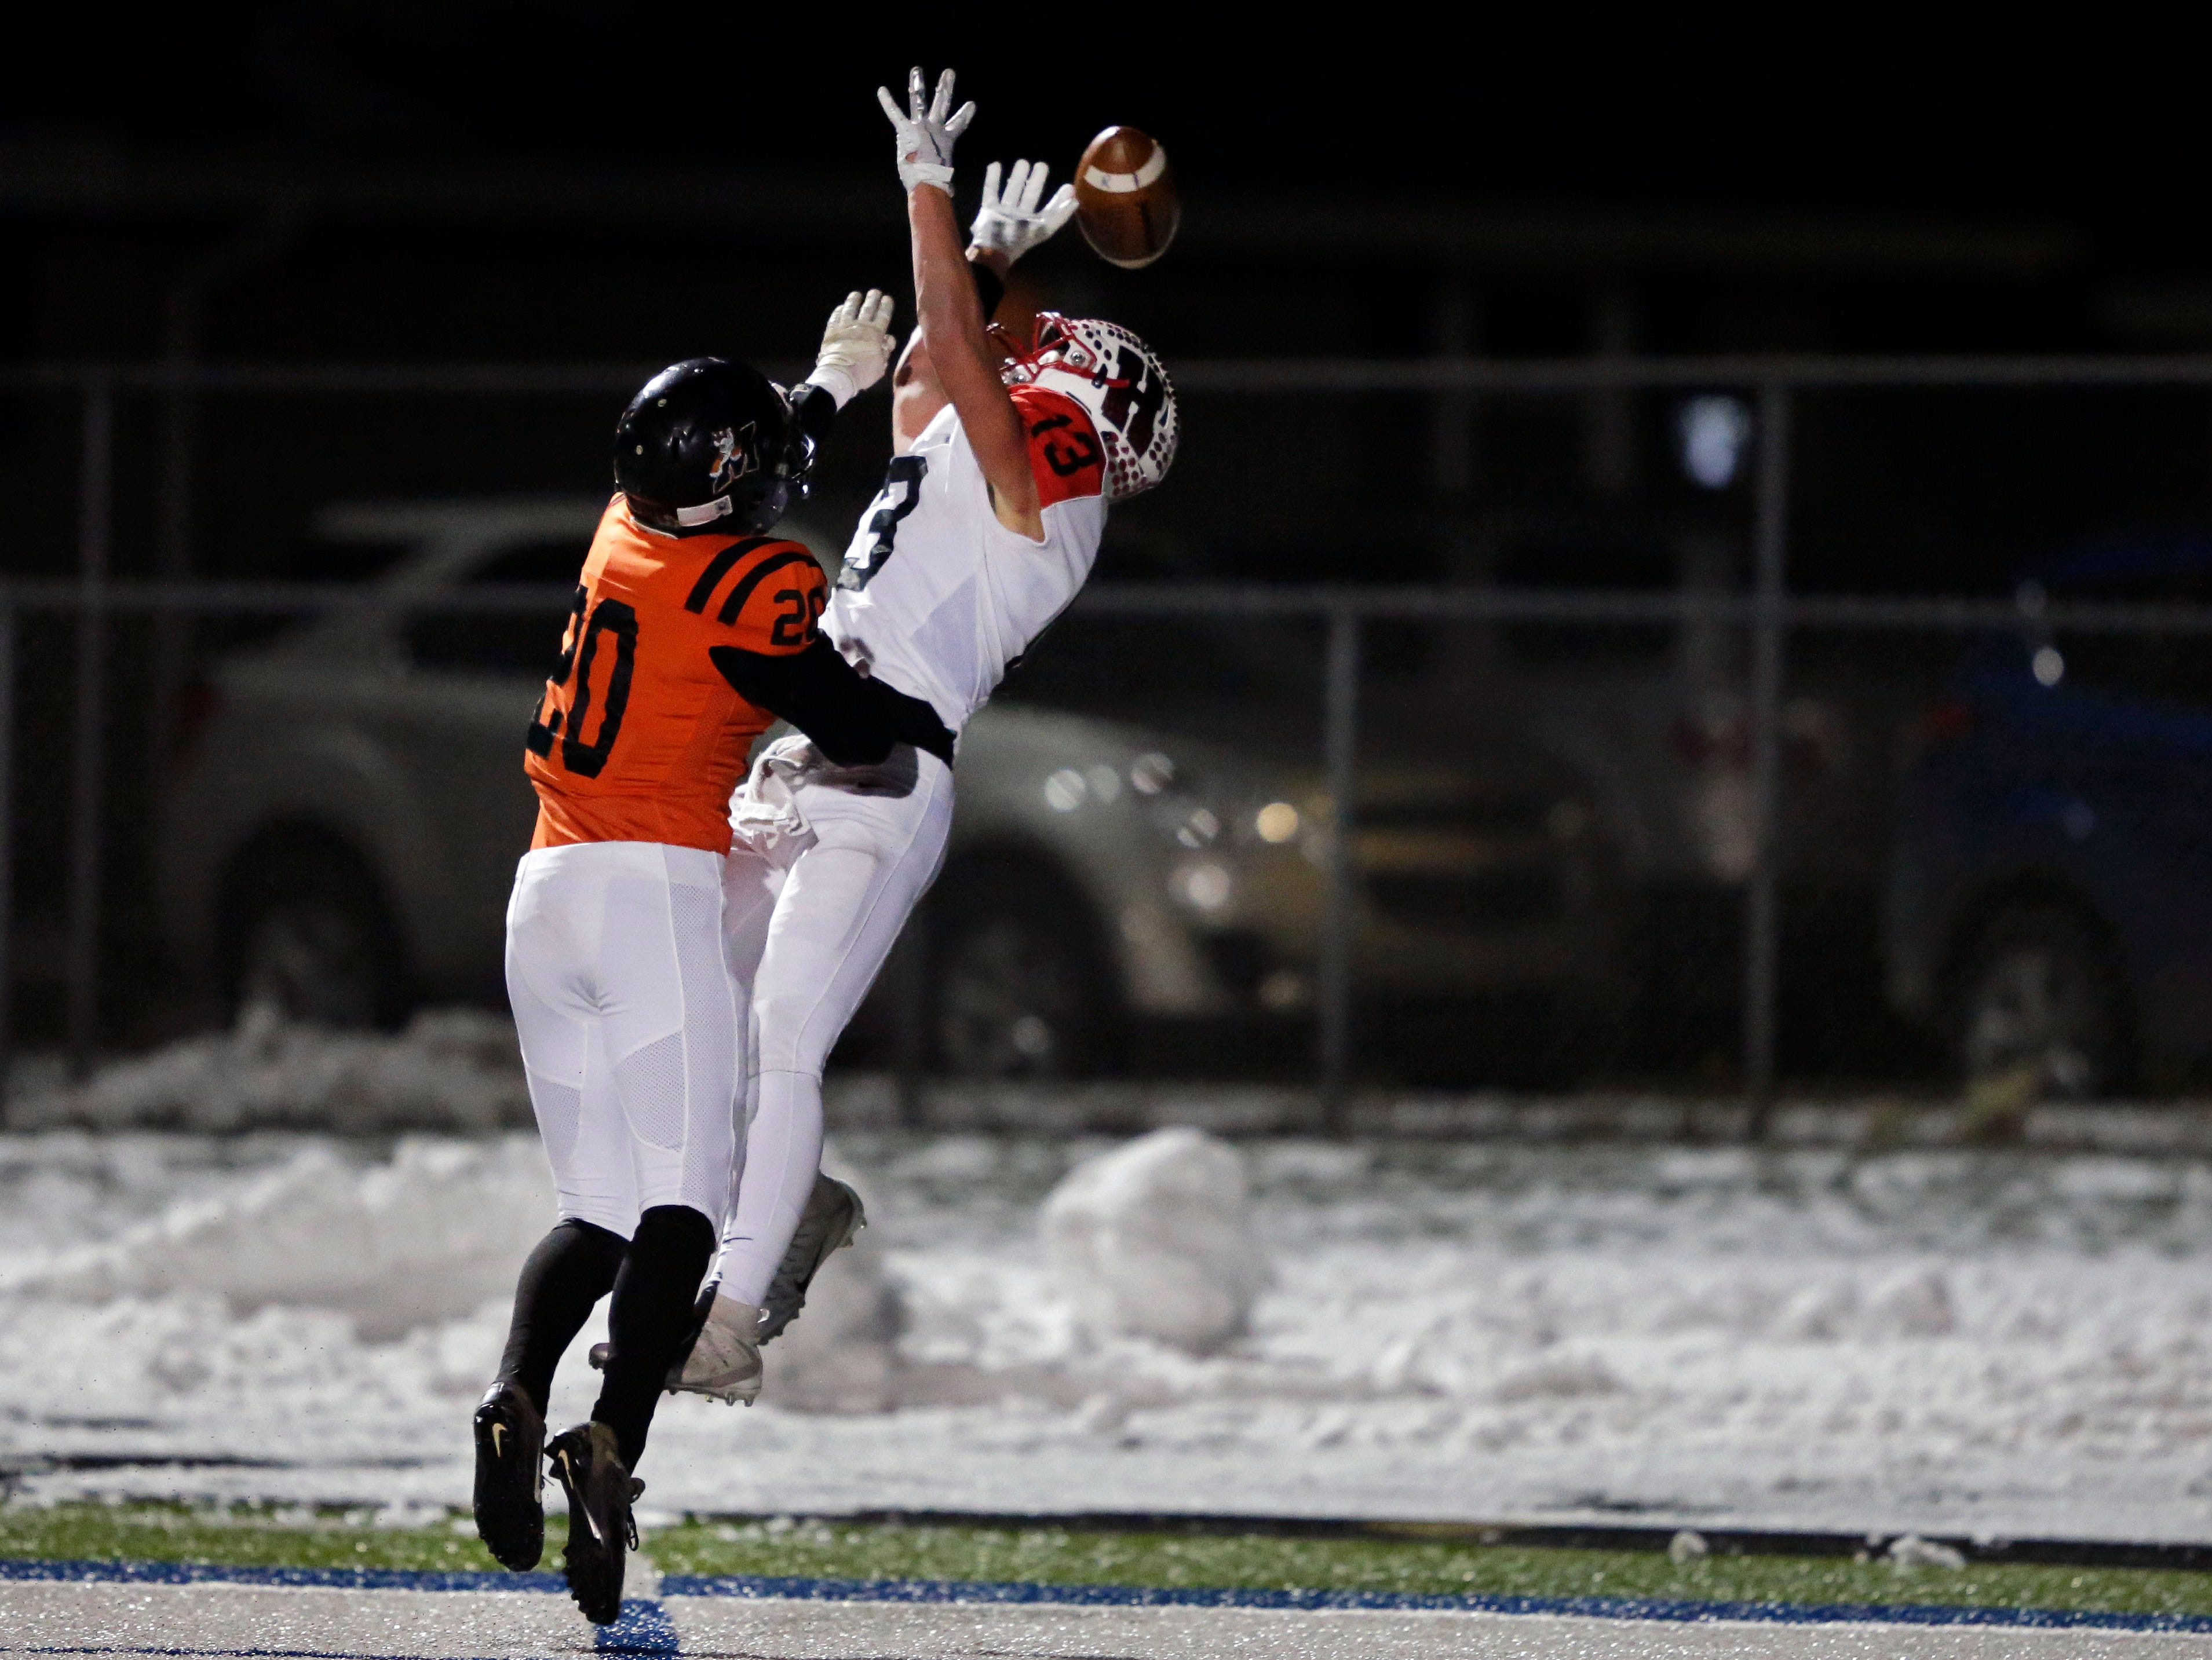 Howie Newbauer of Homestead tries for a pass while being defended by Riley Boushack of Marshfield in a WIAA Division 2 state semifinal football game Friday, November 9, 2018, at Calder Stadium in Menasha, Wis.Ron Page/USA TODAY NETWORK-Wisconsin